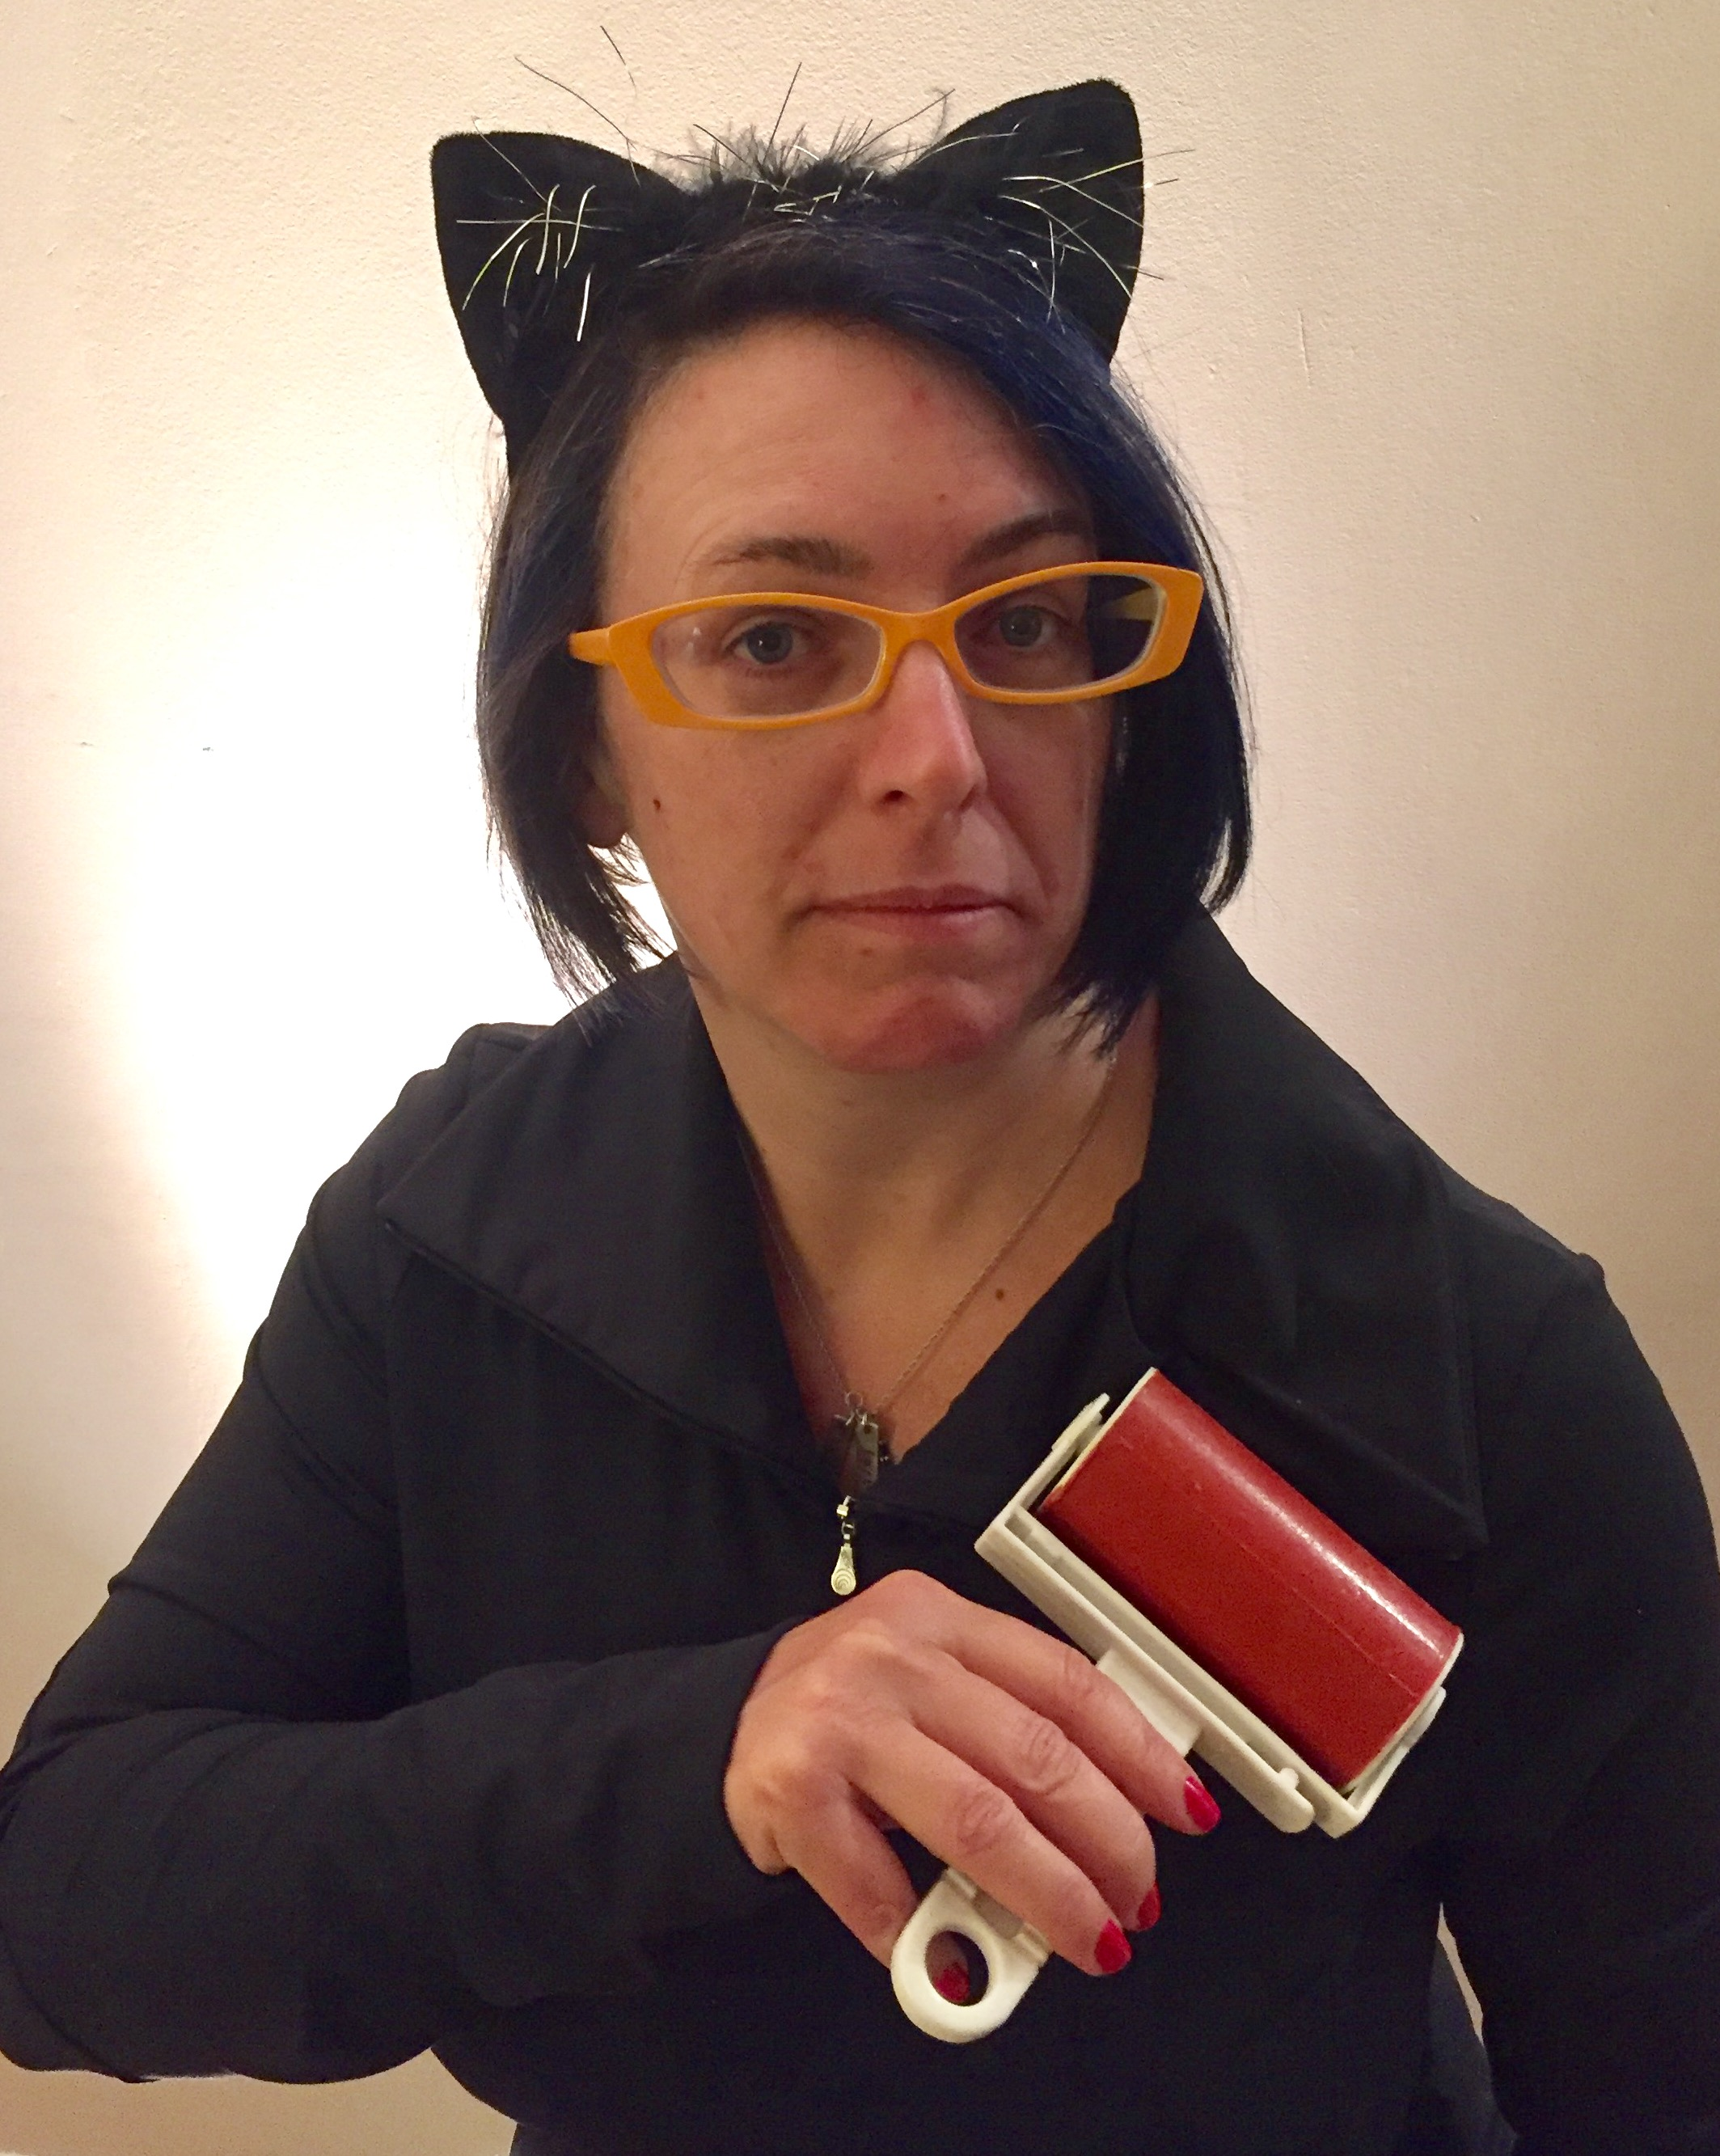 woman in cat ears using a lint roller, looking surprised